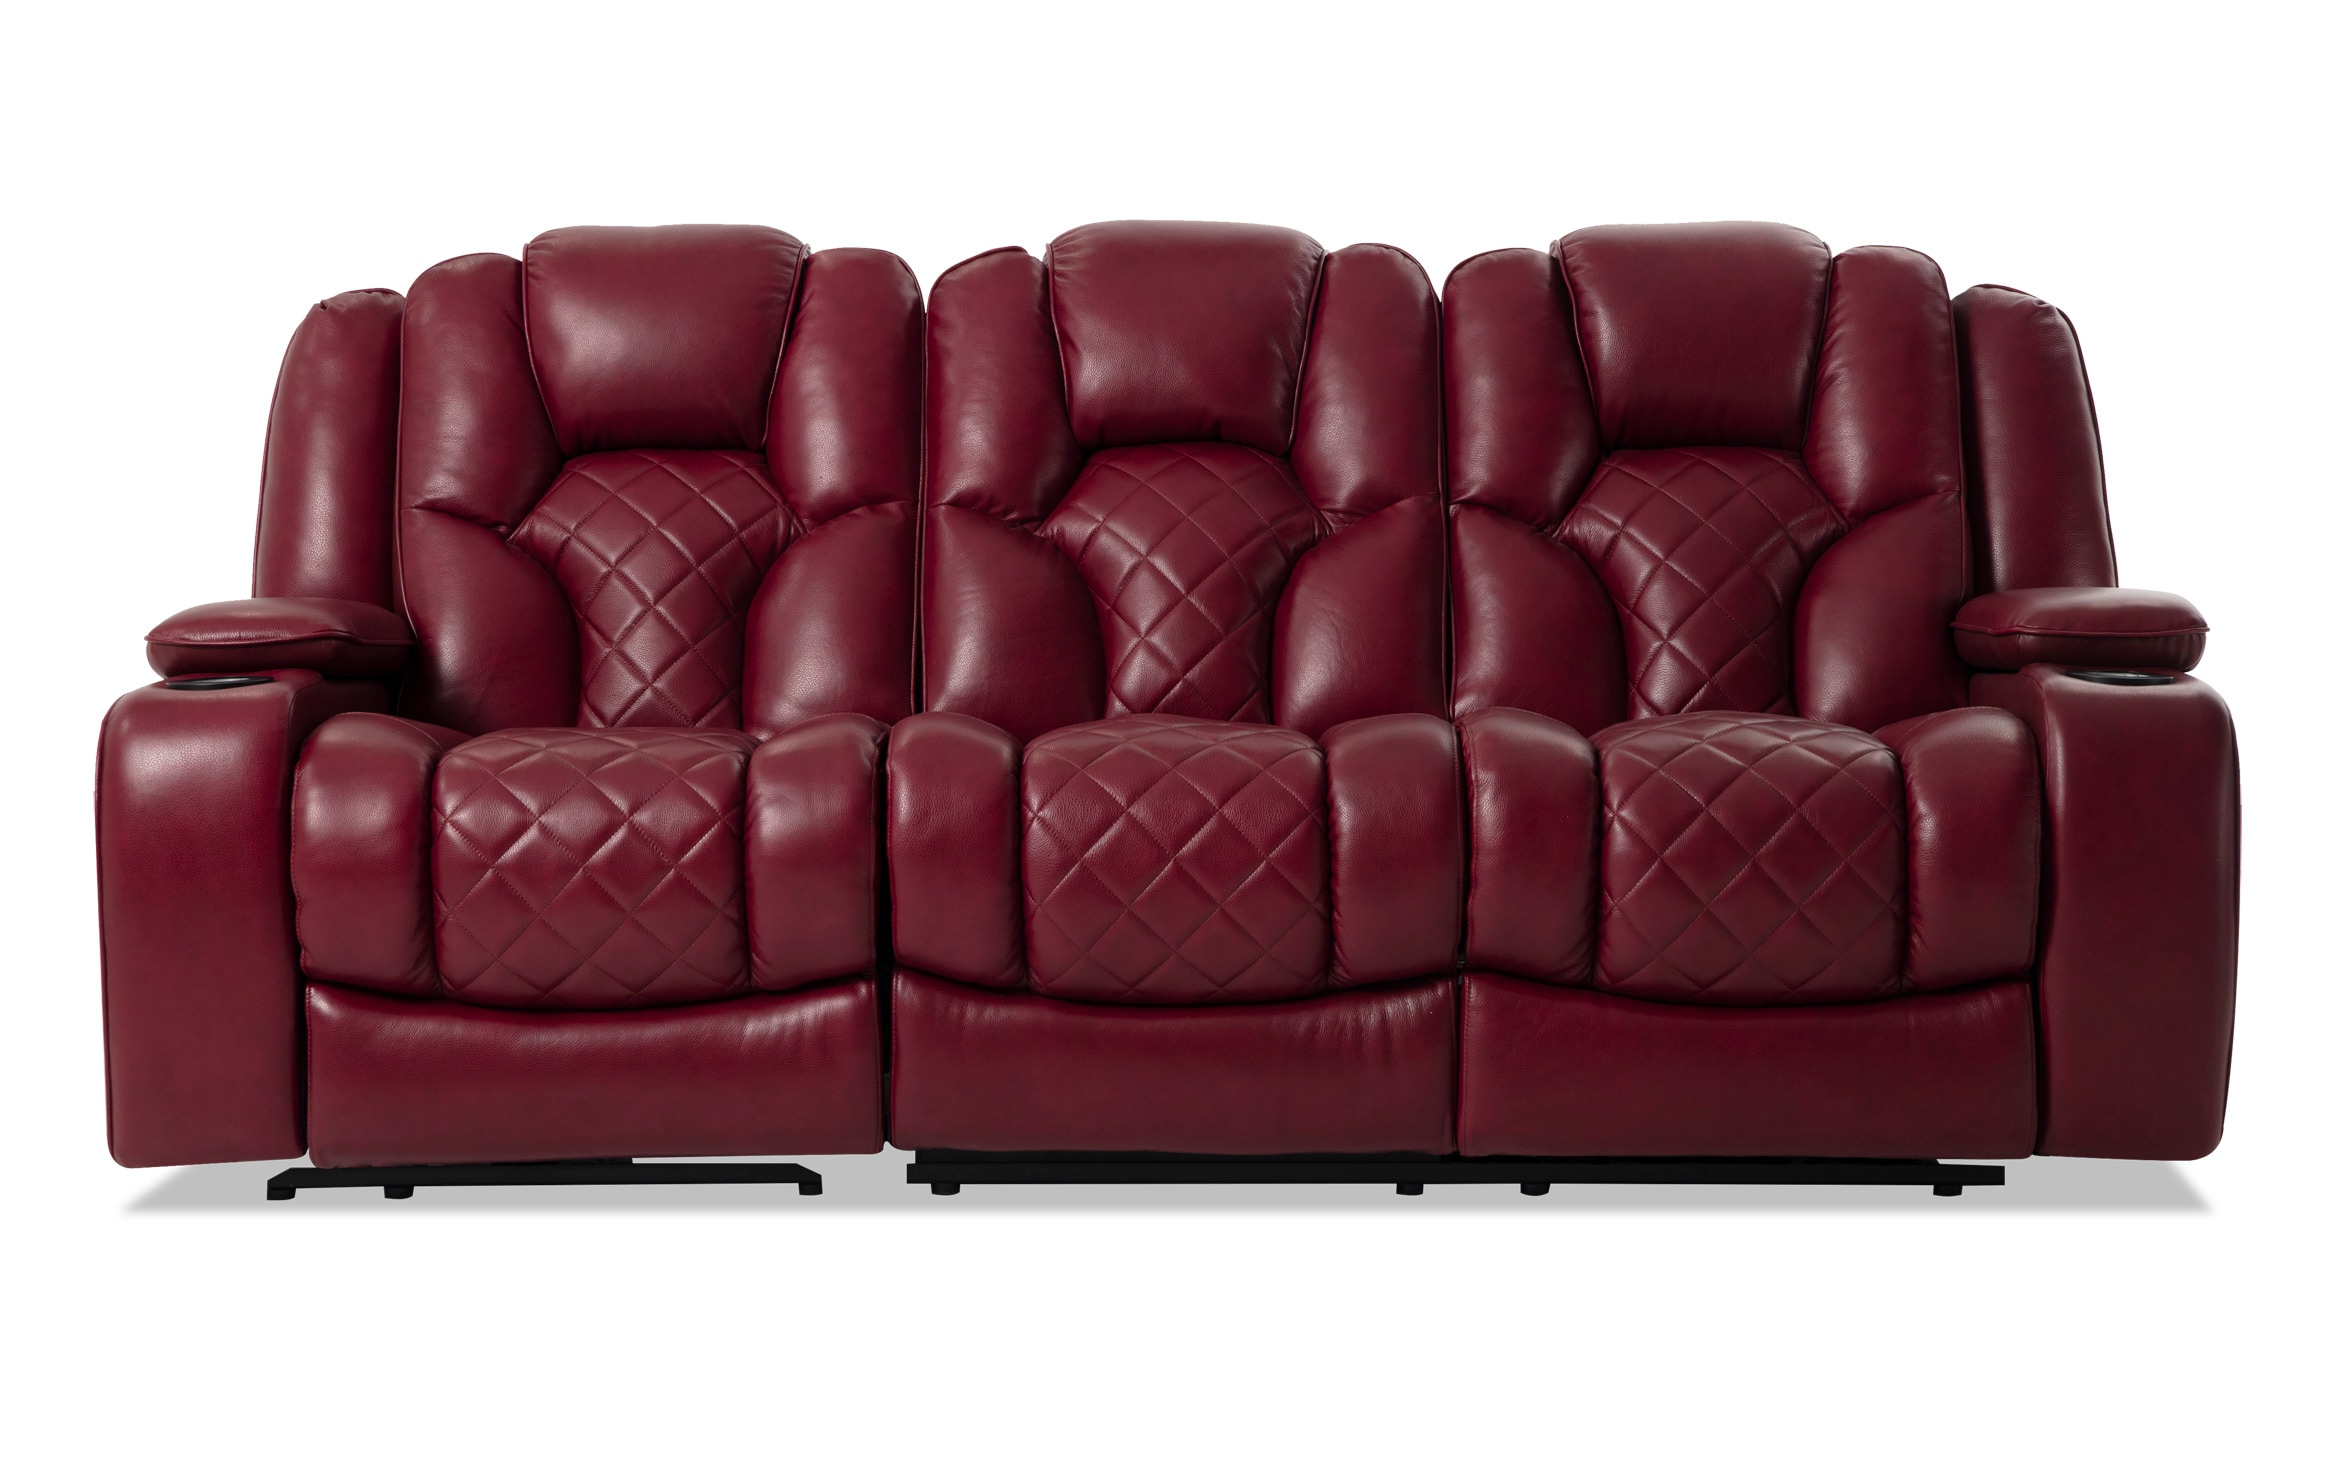 Panther Fire Leather Dual Power Reclining Sofas For Widely Used Red Leather Reclining Sofa And Loveseat – Latest Sofa Pictures (View 4 of 15)